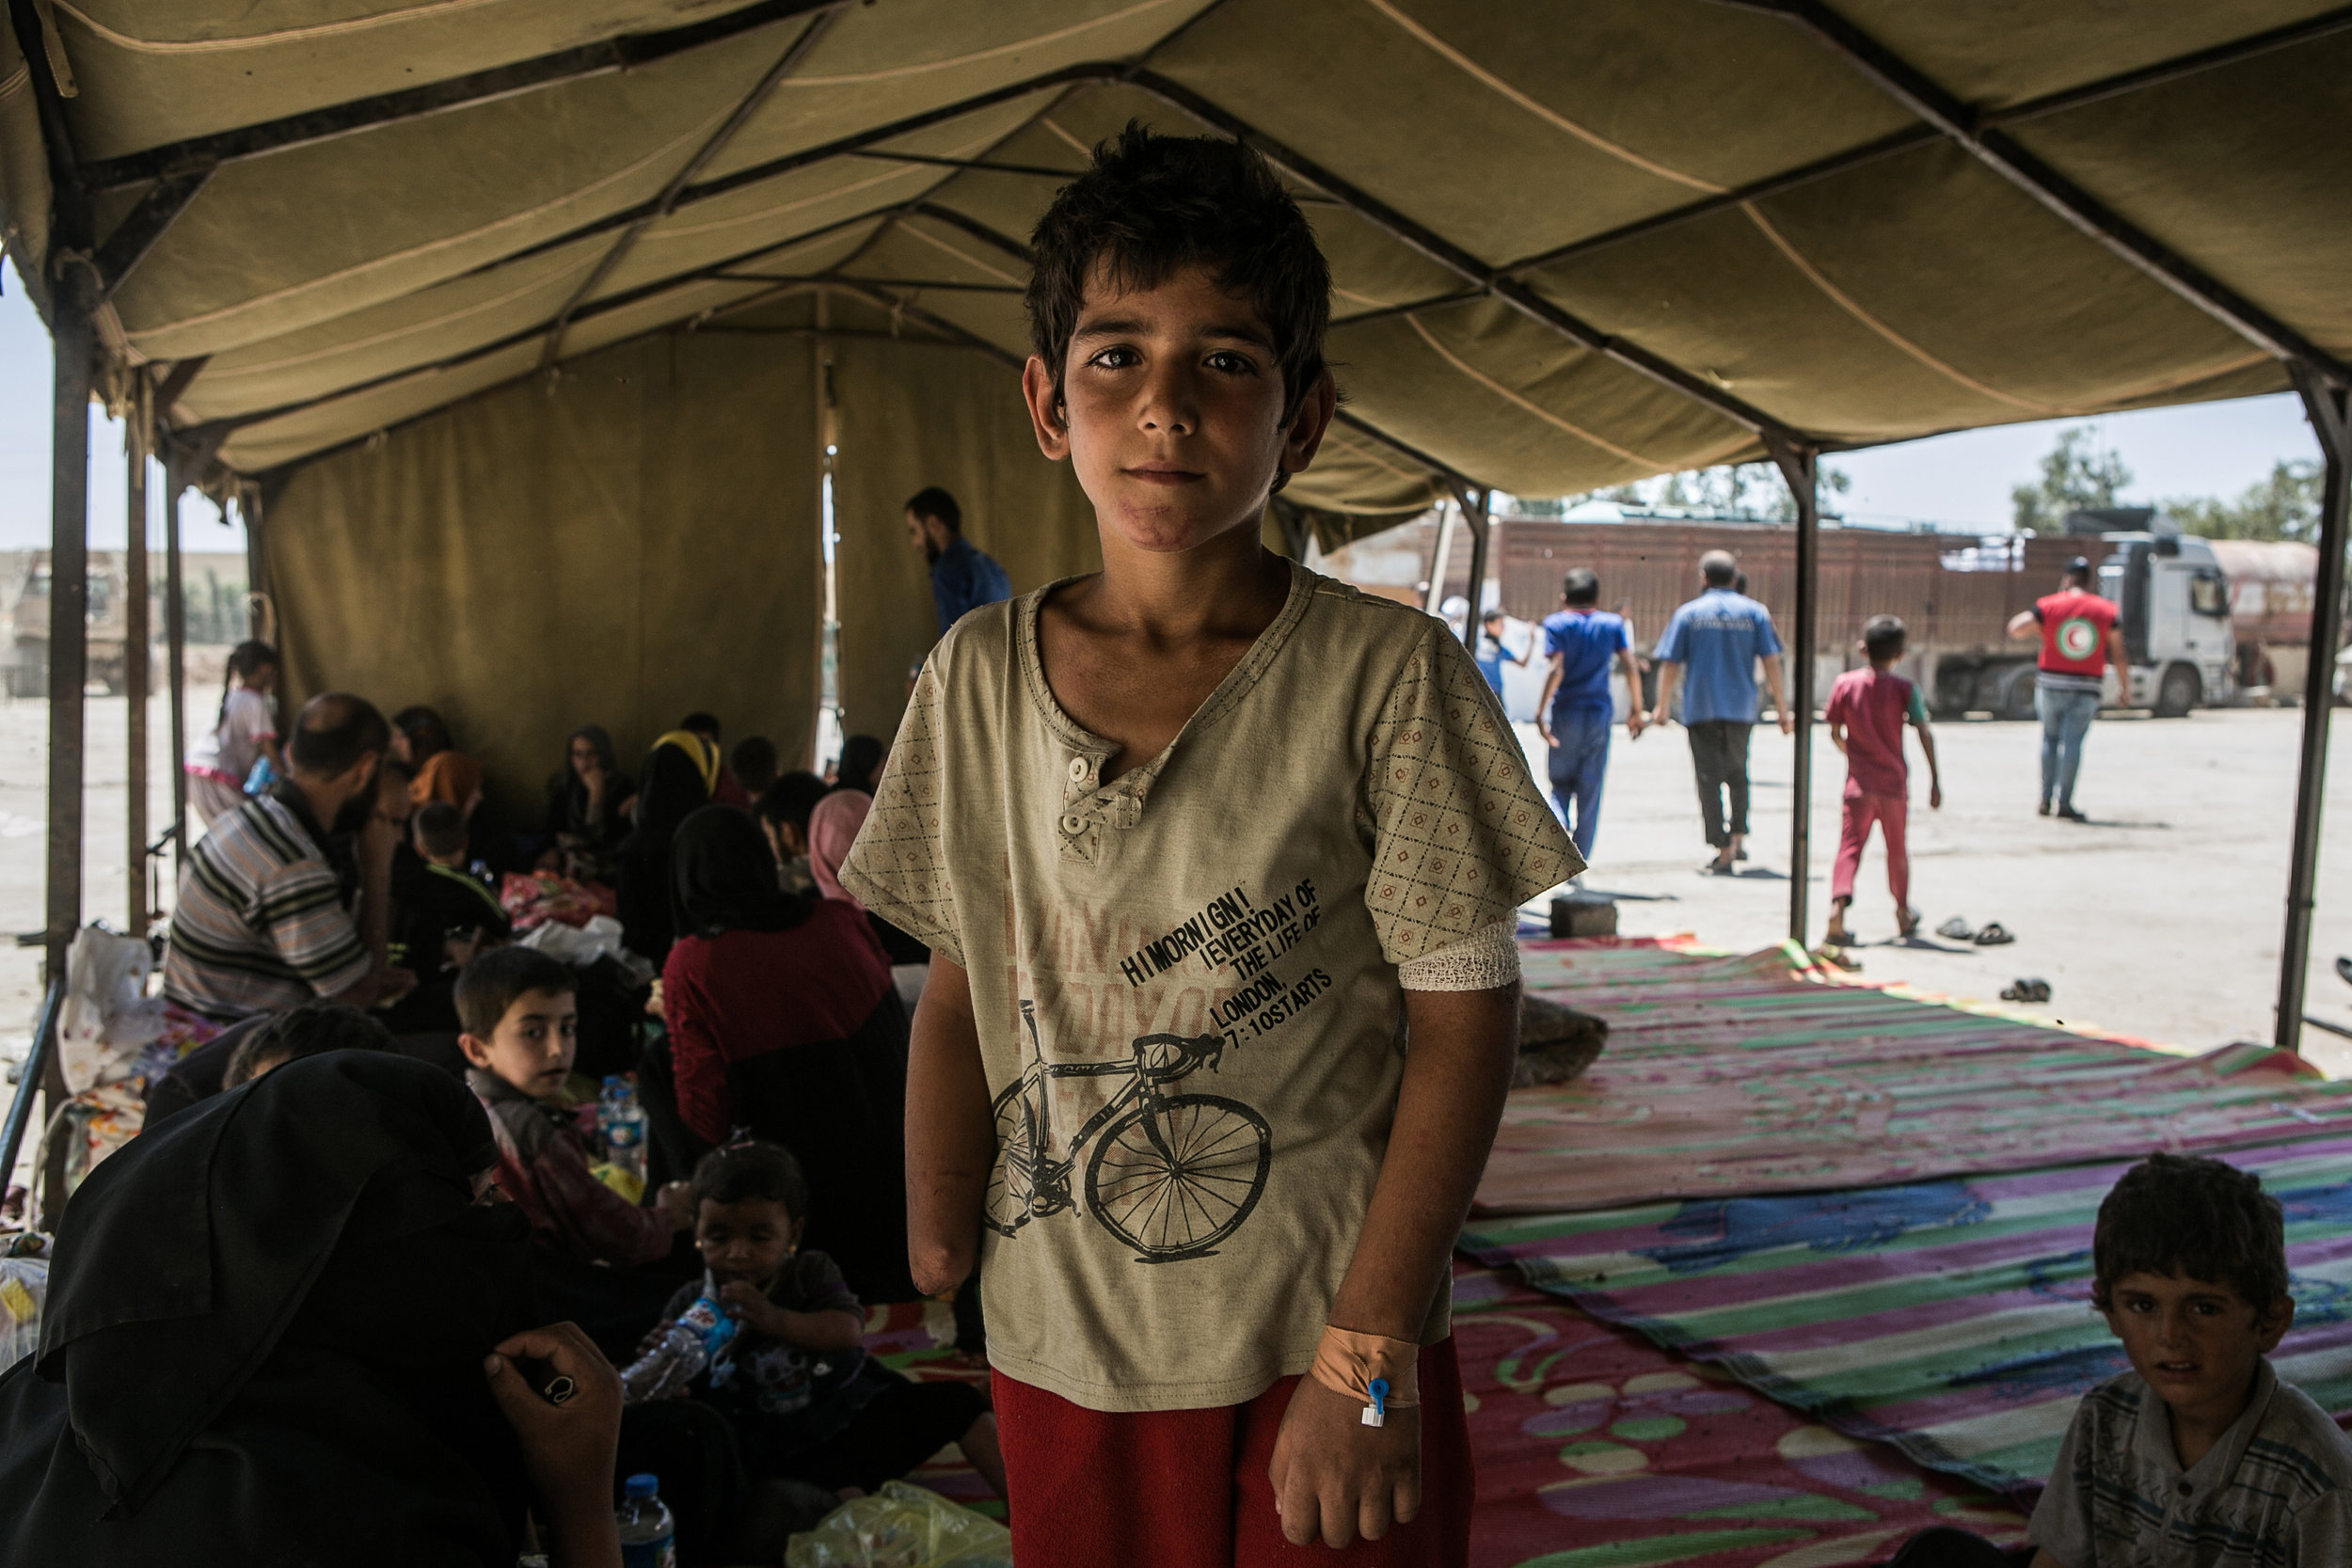 A young boy who lost his hand due to fighting in Mosul waits with his family to be relocated to one of the displaced people's camps south of Mosul. His mother says his hand was injured by a mortar falling in western Mosul and that Islamic State doctors treated him.